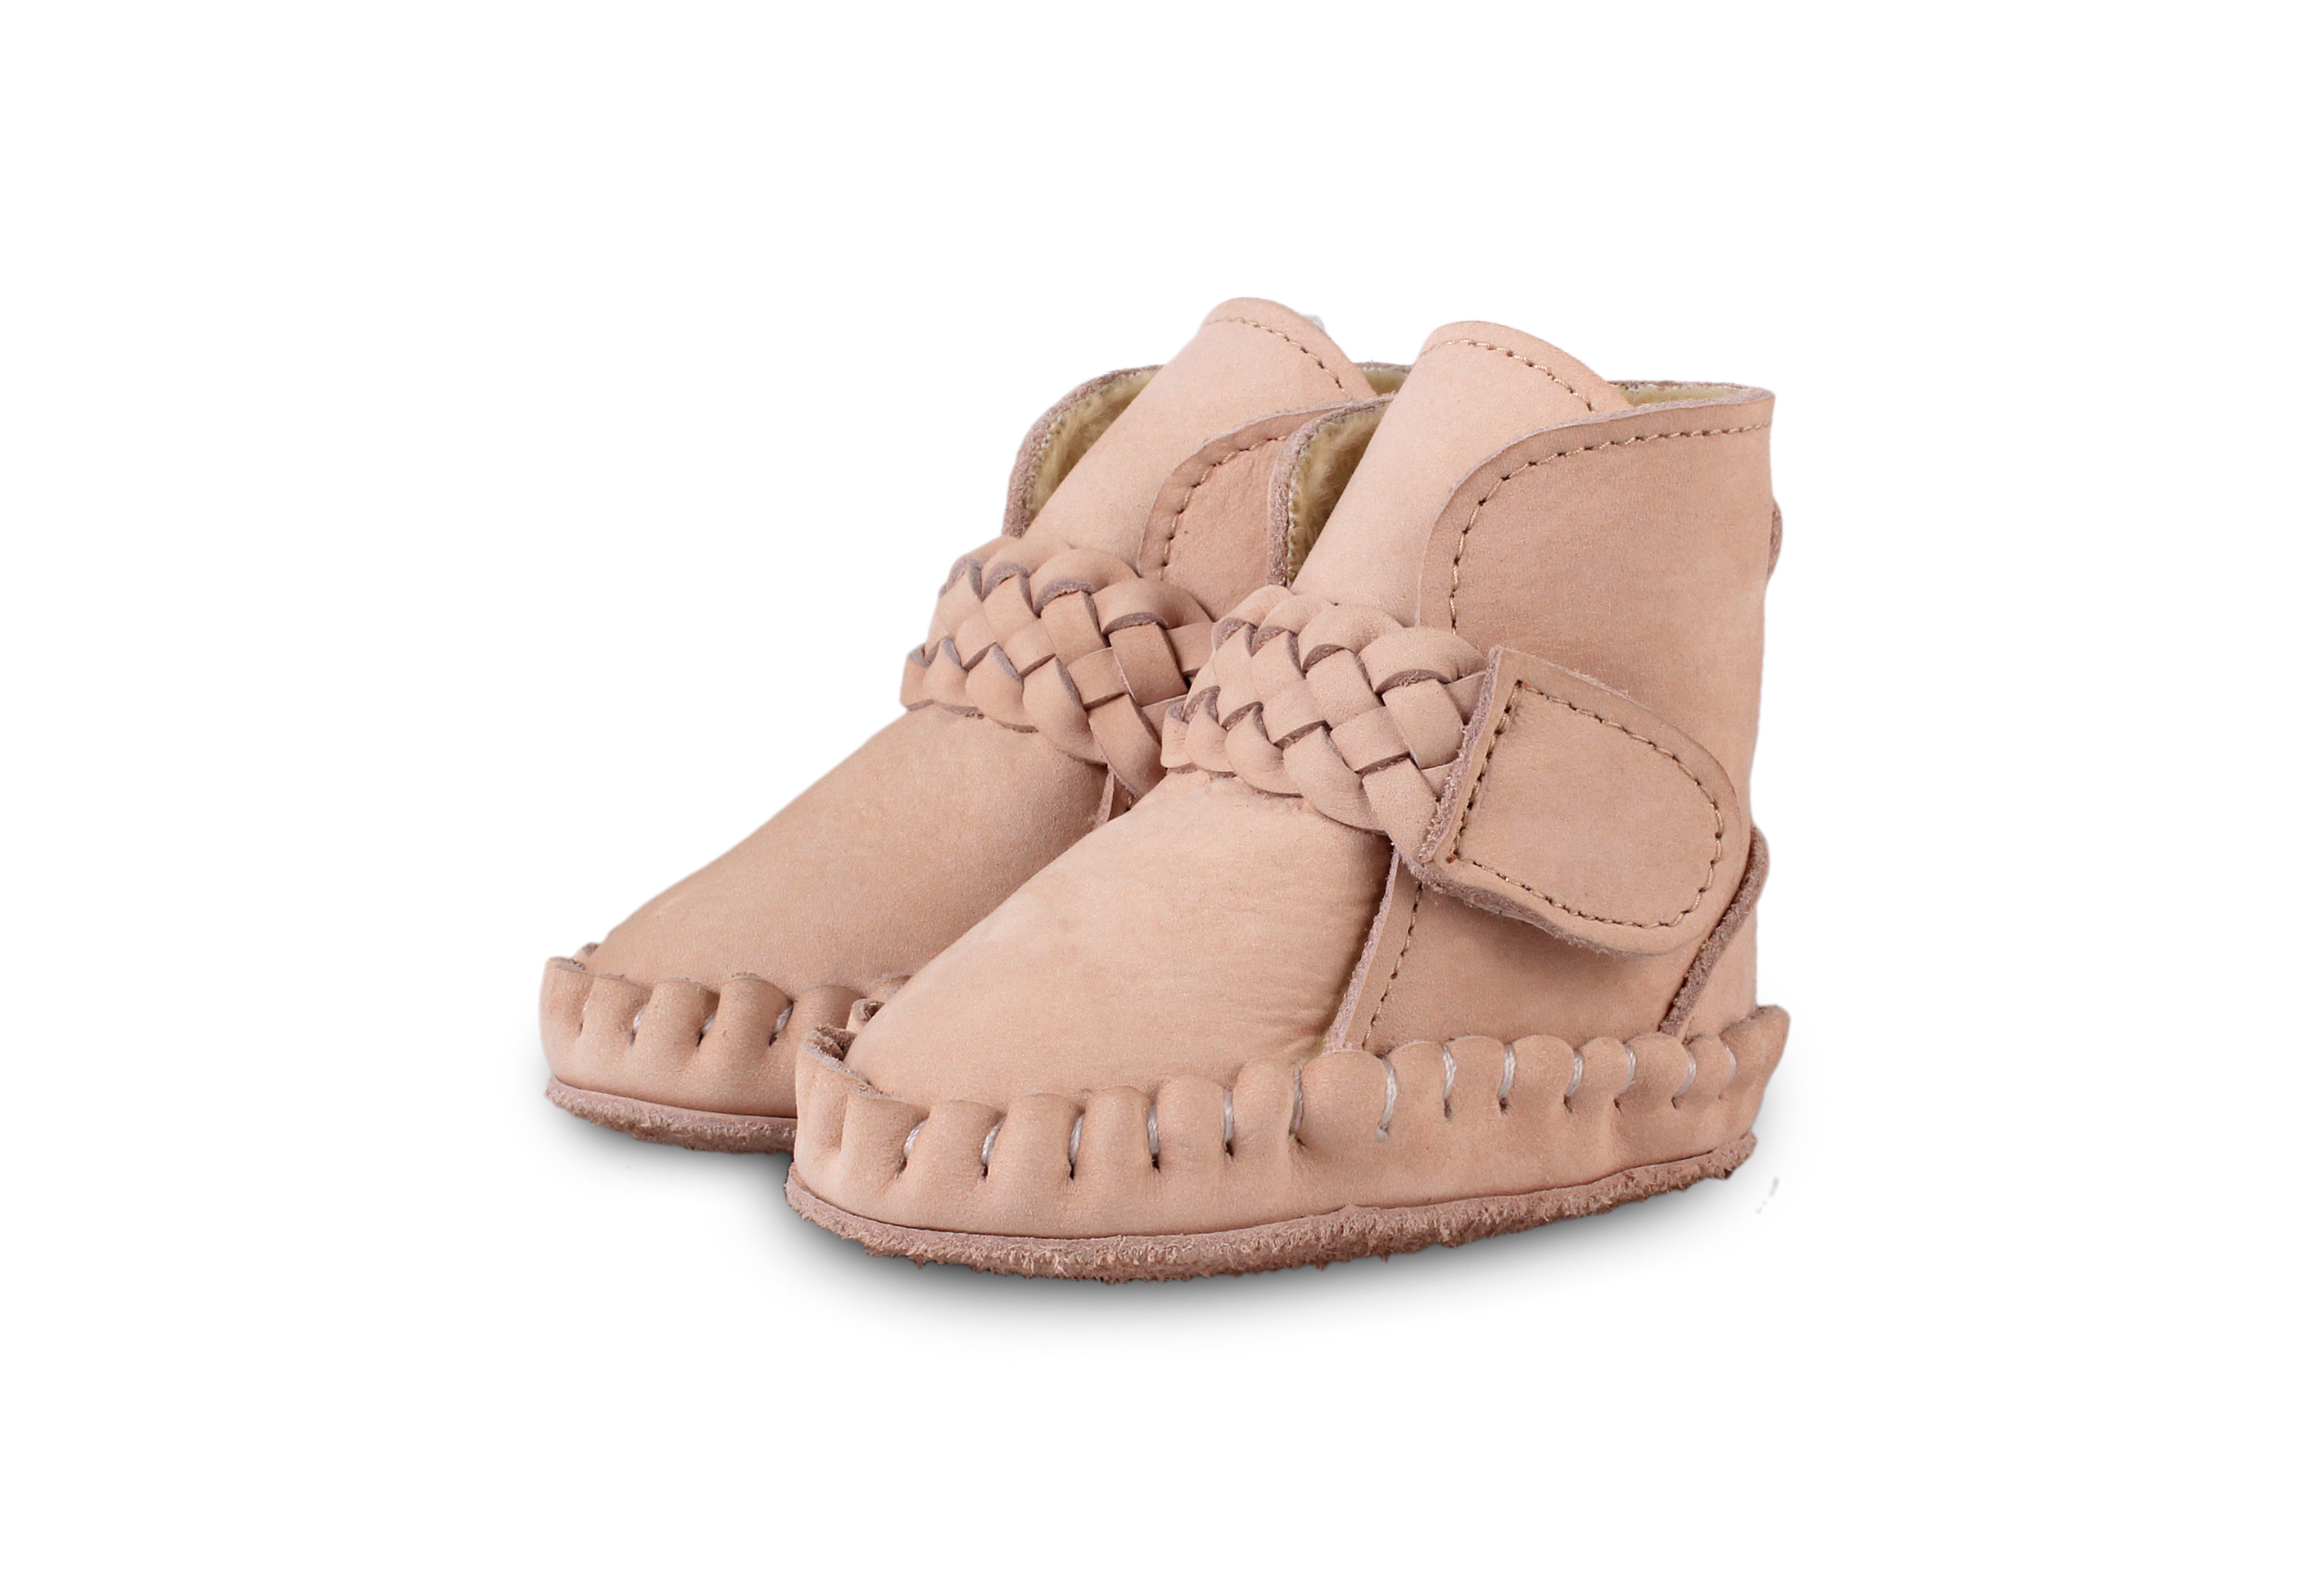 Donsje Pink - Mace Lining  Baby Shoes Powder Nubuck - Footware